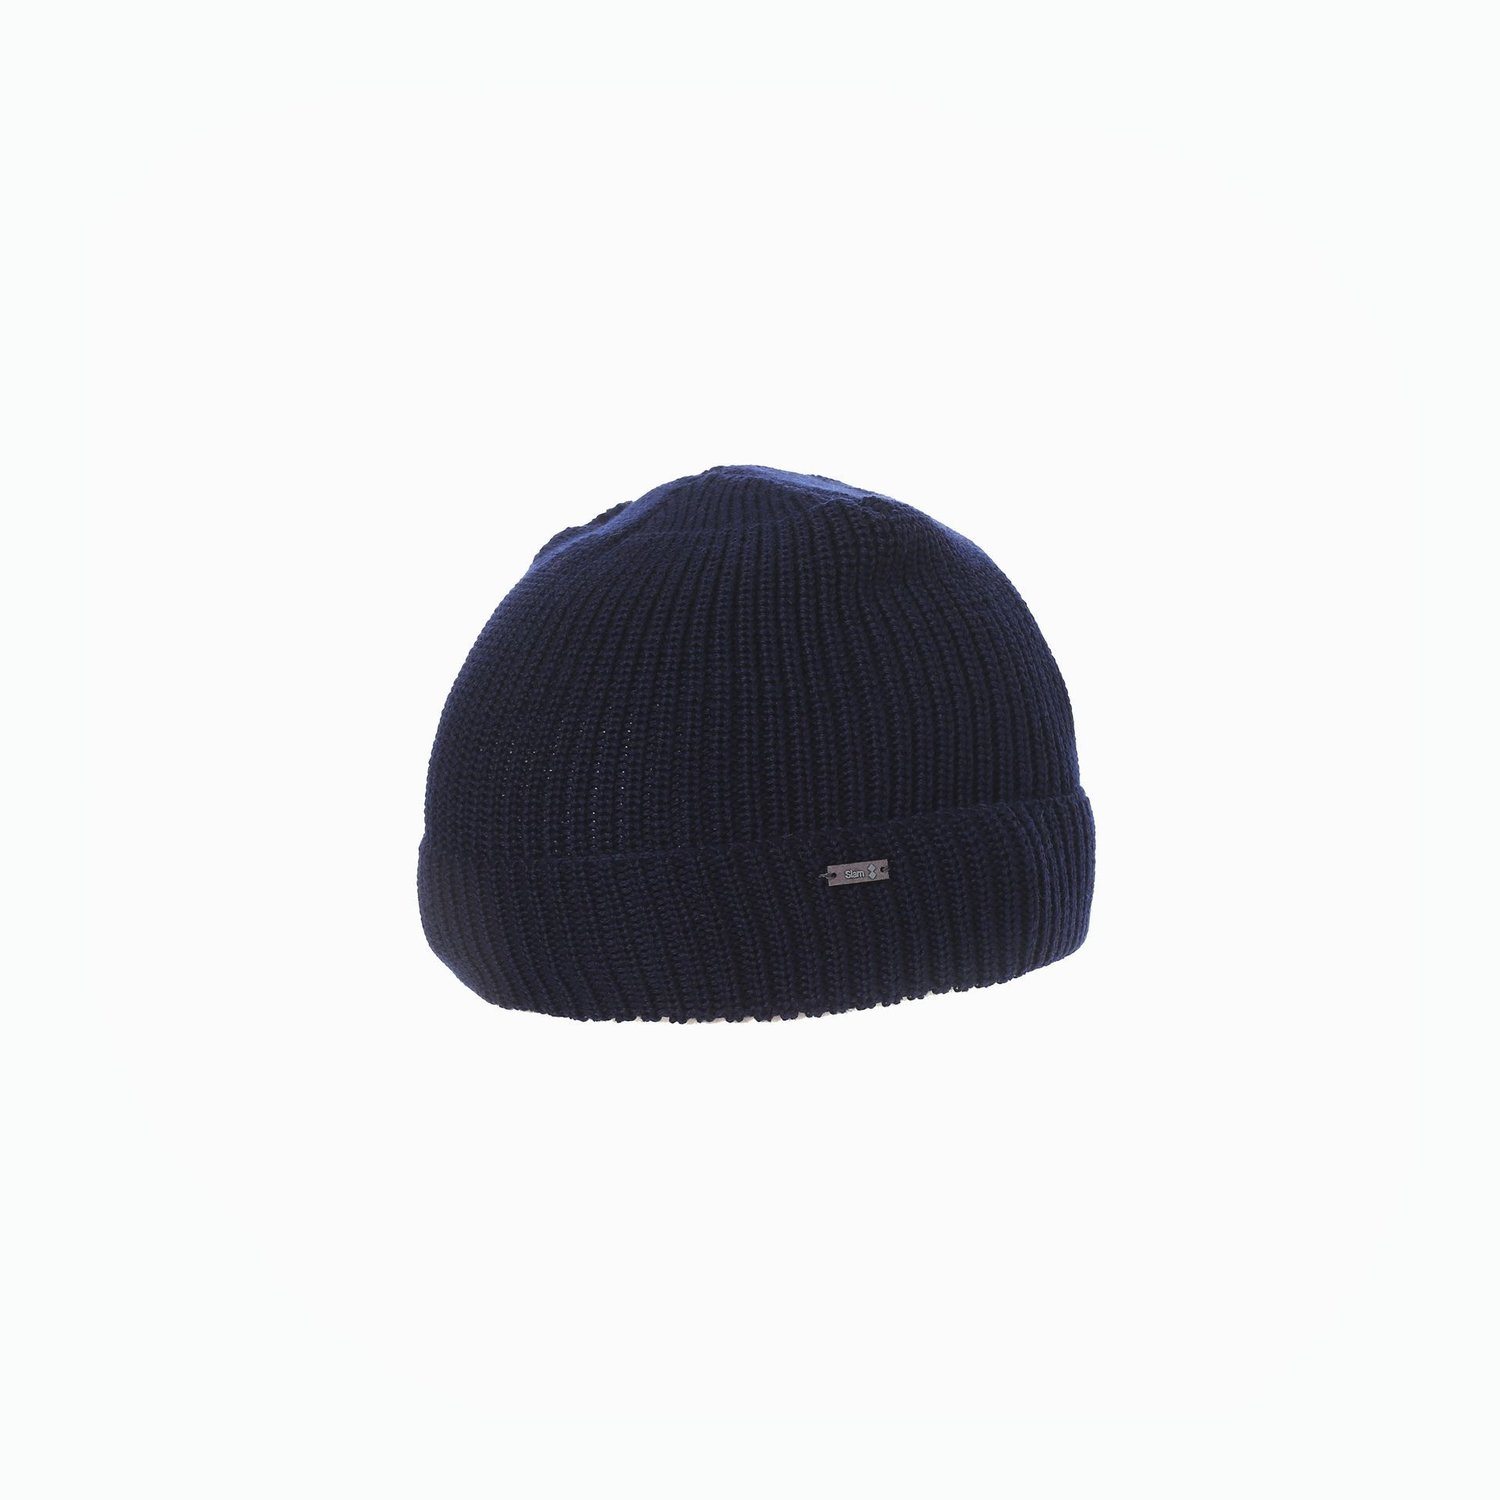 Wool hat - Navy